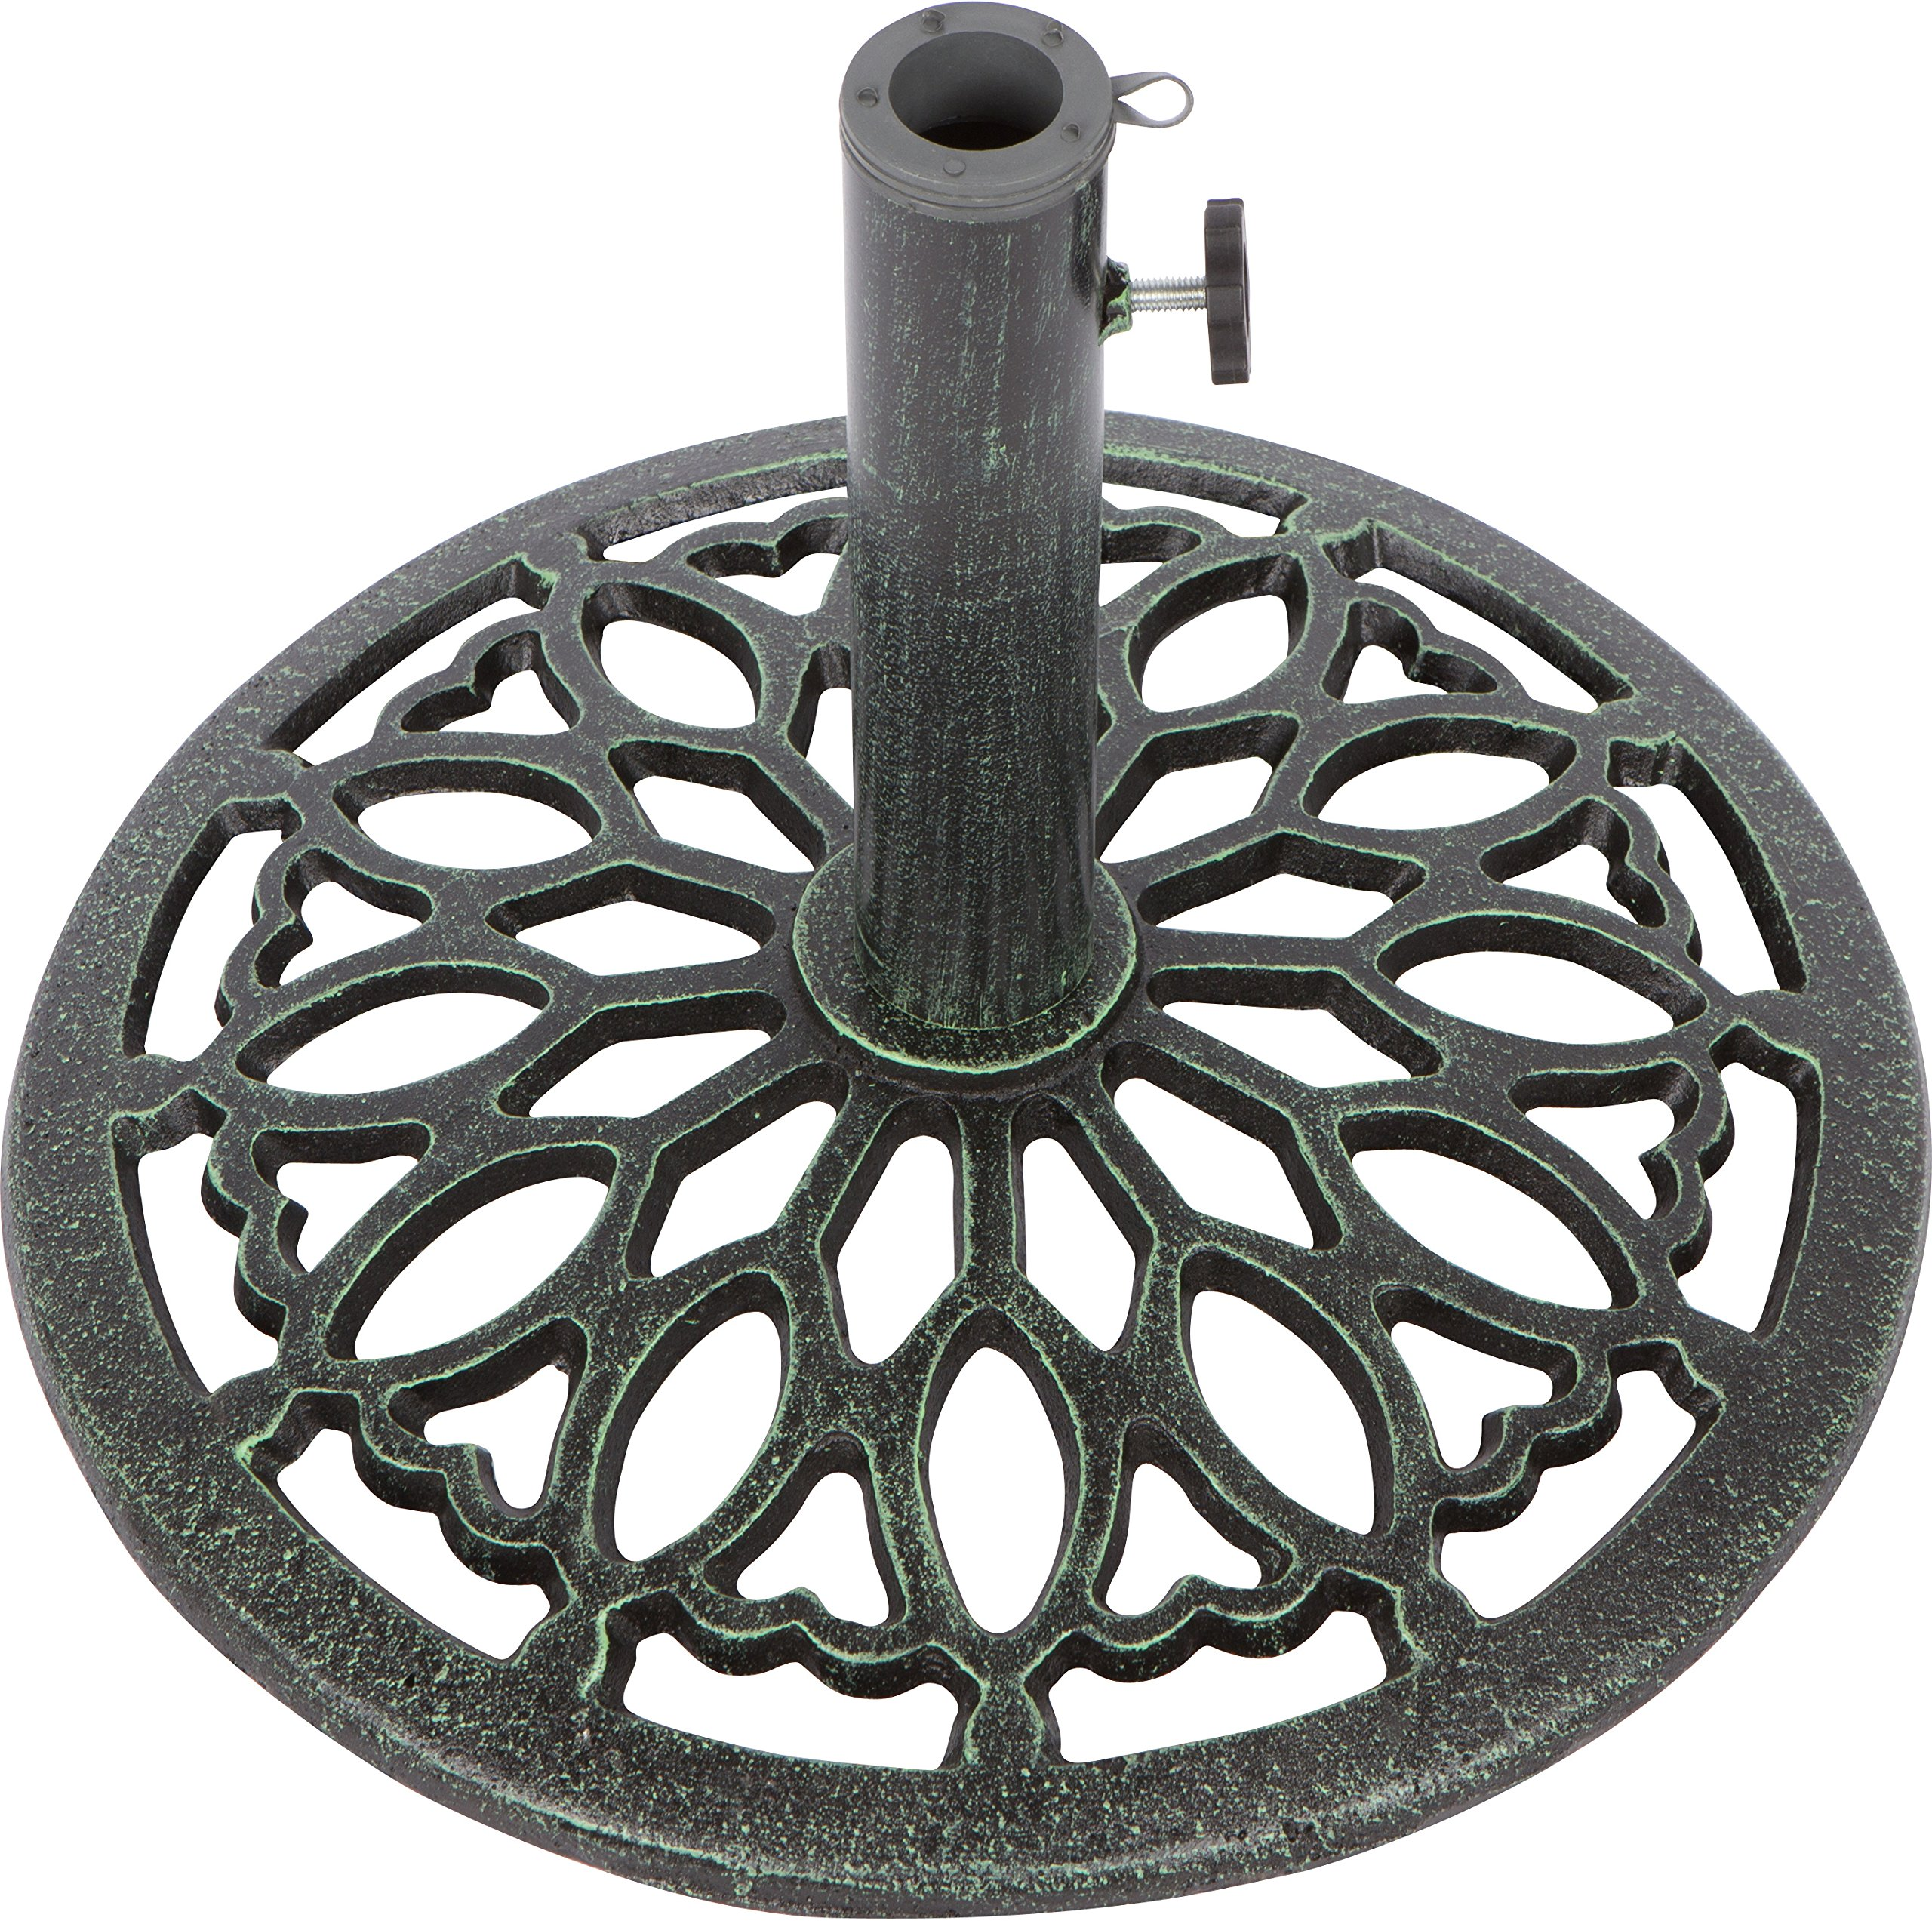 Trademark Innovations Cast Iron Umbrella Base -17.5 Inch Diameter (Green) by Trademark Innovations